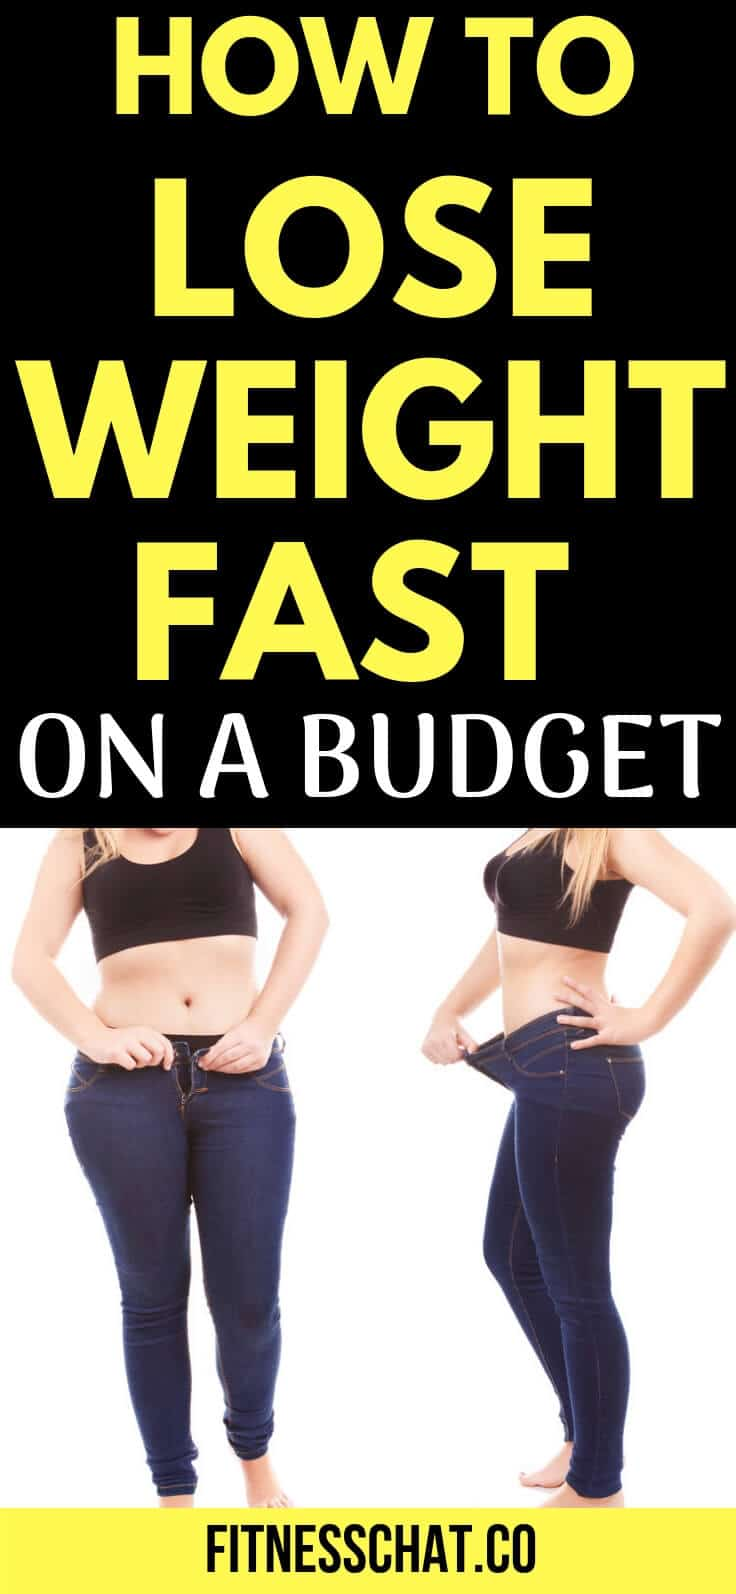 how to lose weight fast in 1 week on a budget